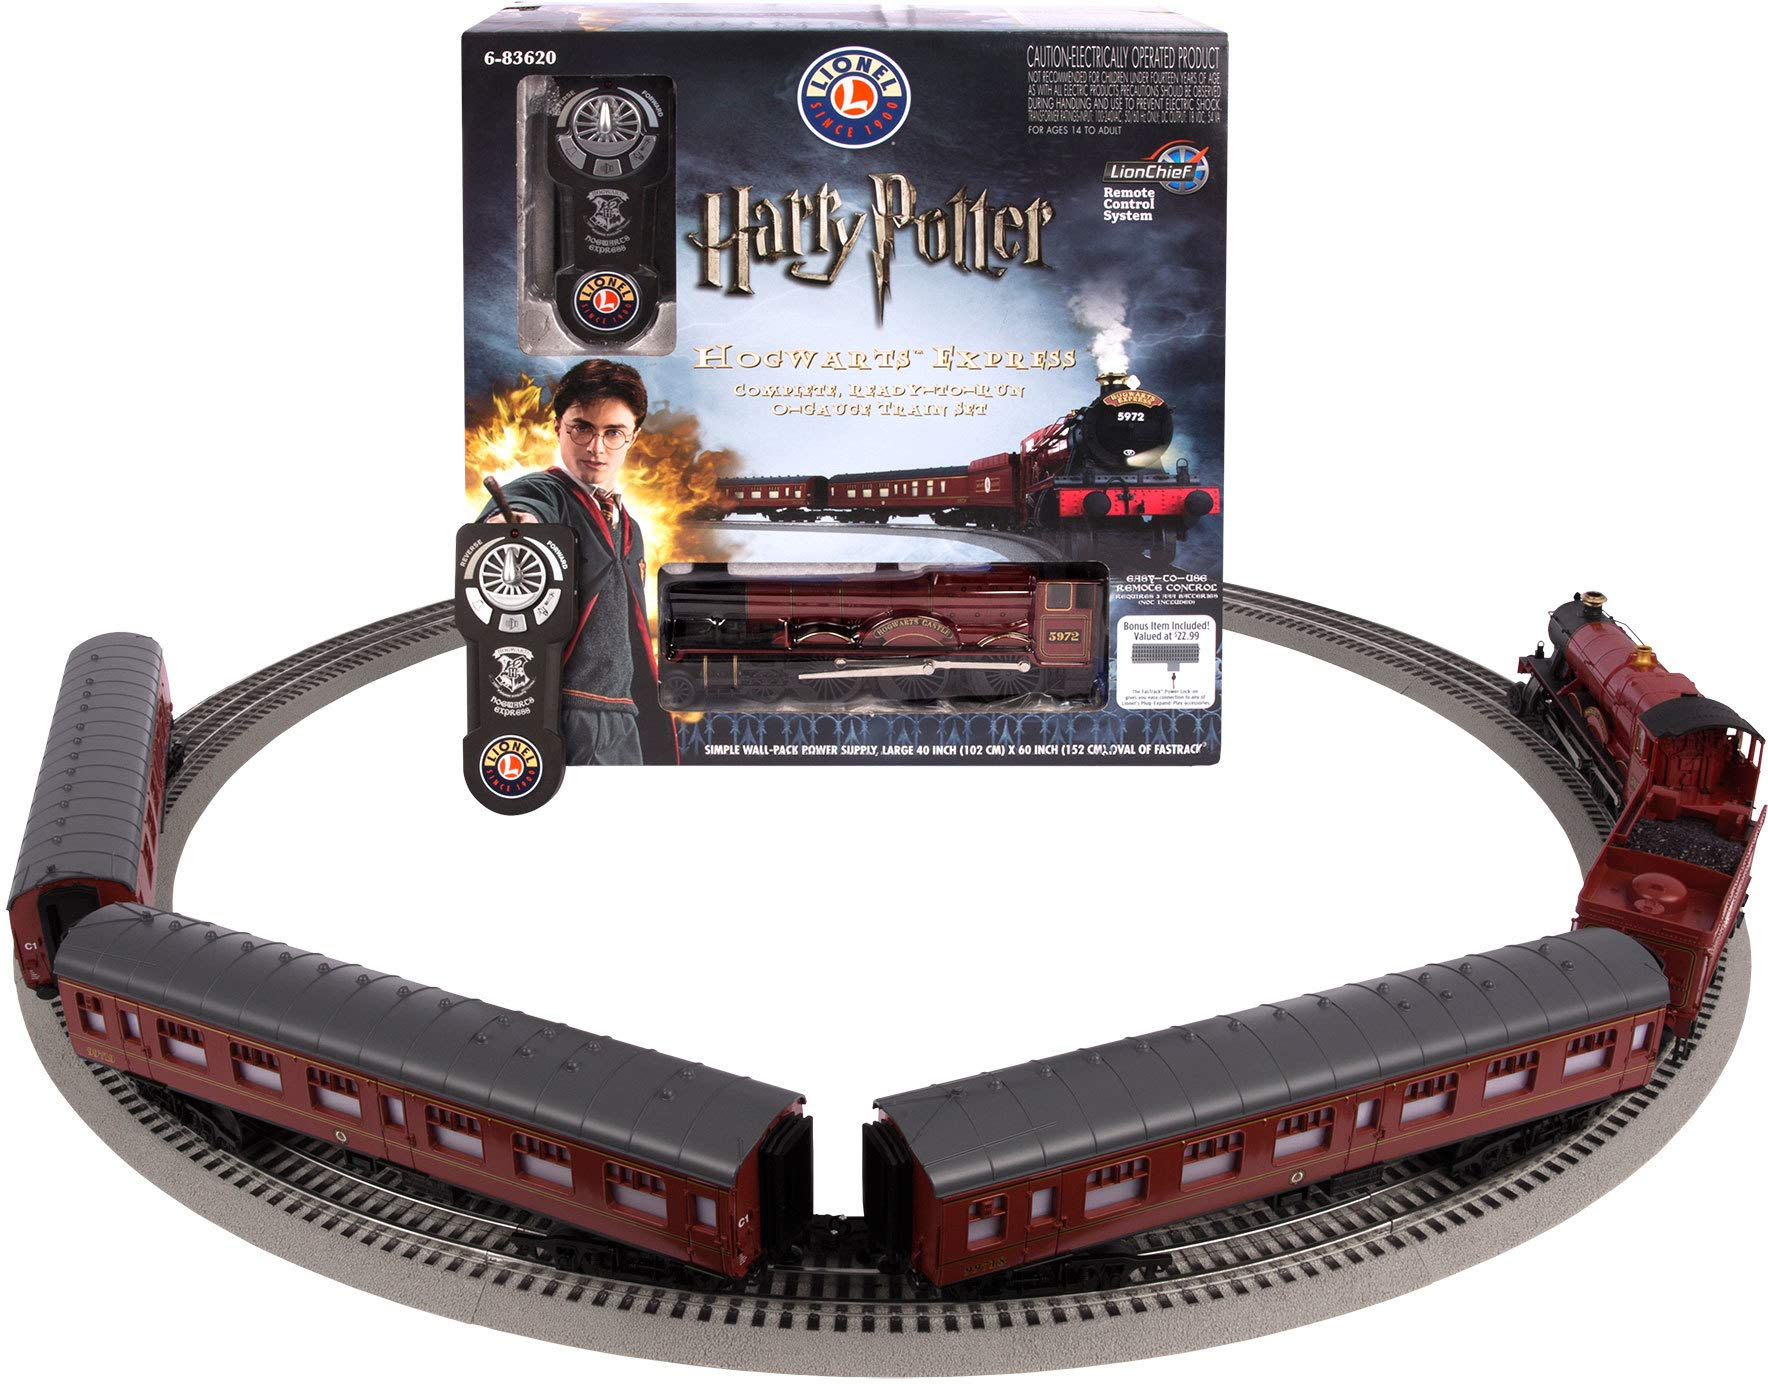 Lionel Hogwarts Express Electric O Gauge Model Train Set w/ Remote and Bluetooth Capability by Lionel